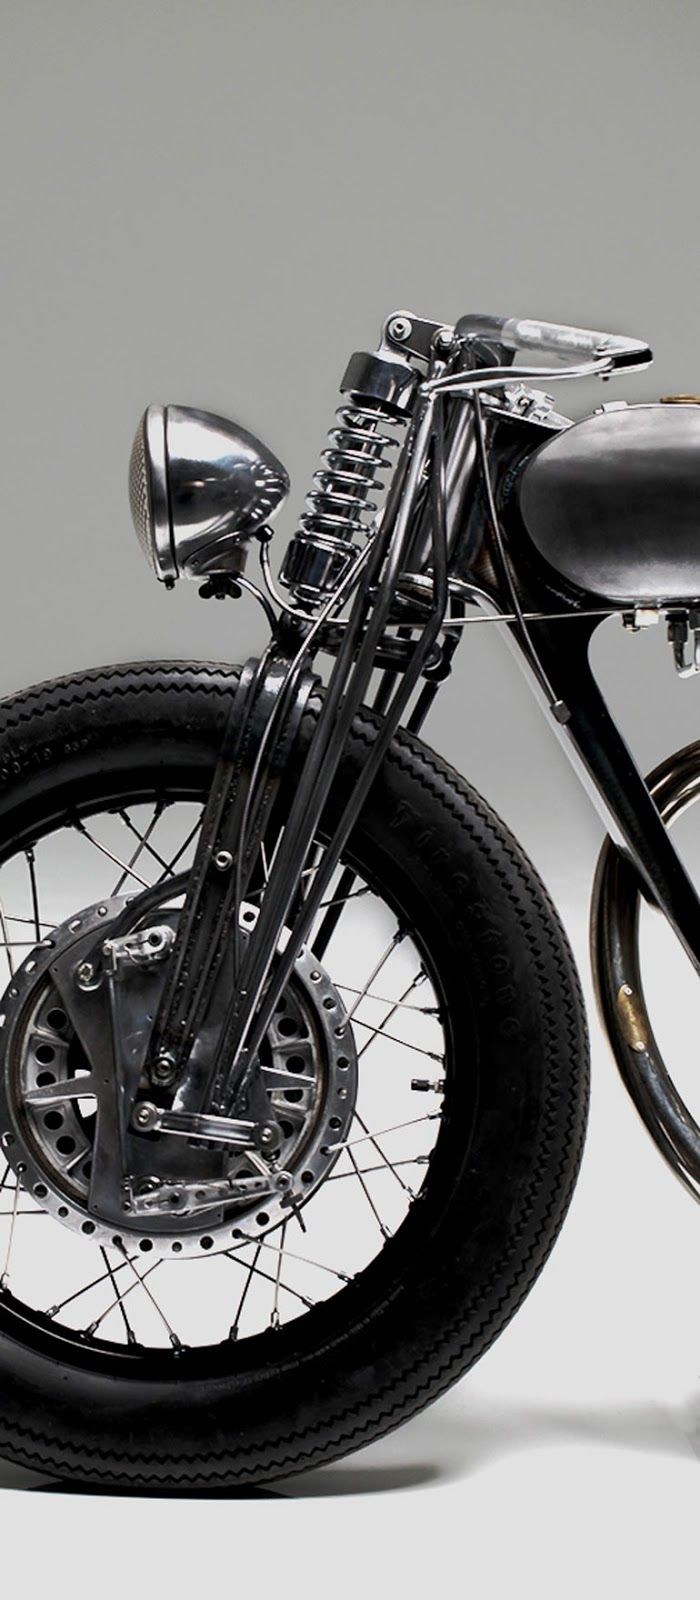 Old school design, - Girder front forks and drum brake can still be found today.